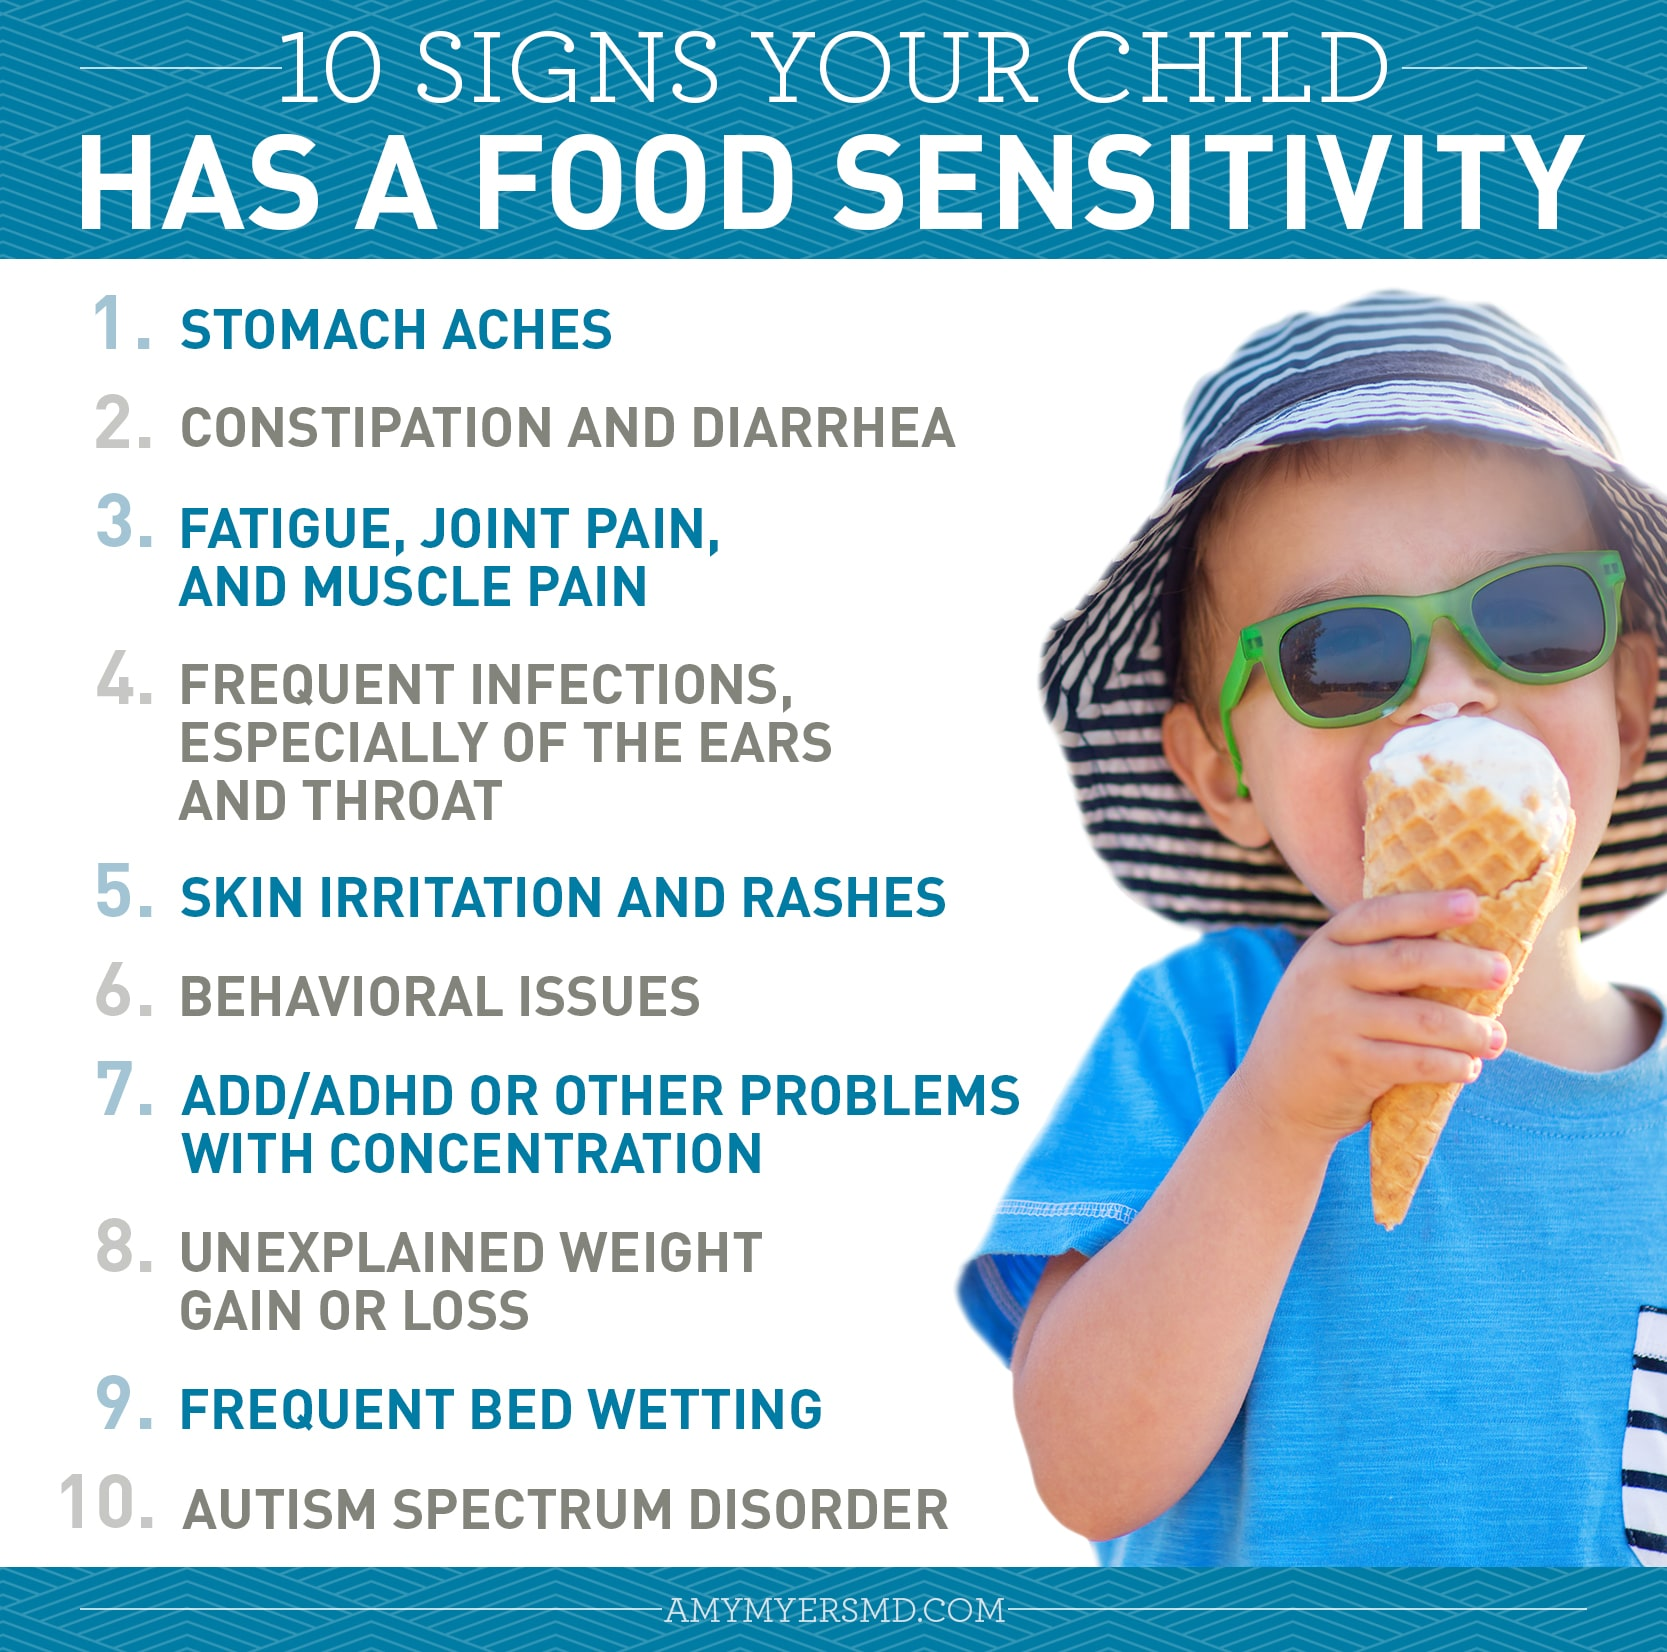 10 Signs Your Child Has a Food Sensitivity - Infographic - Amy Myers MD